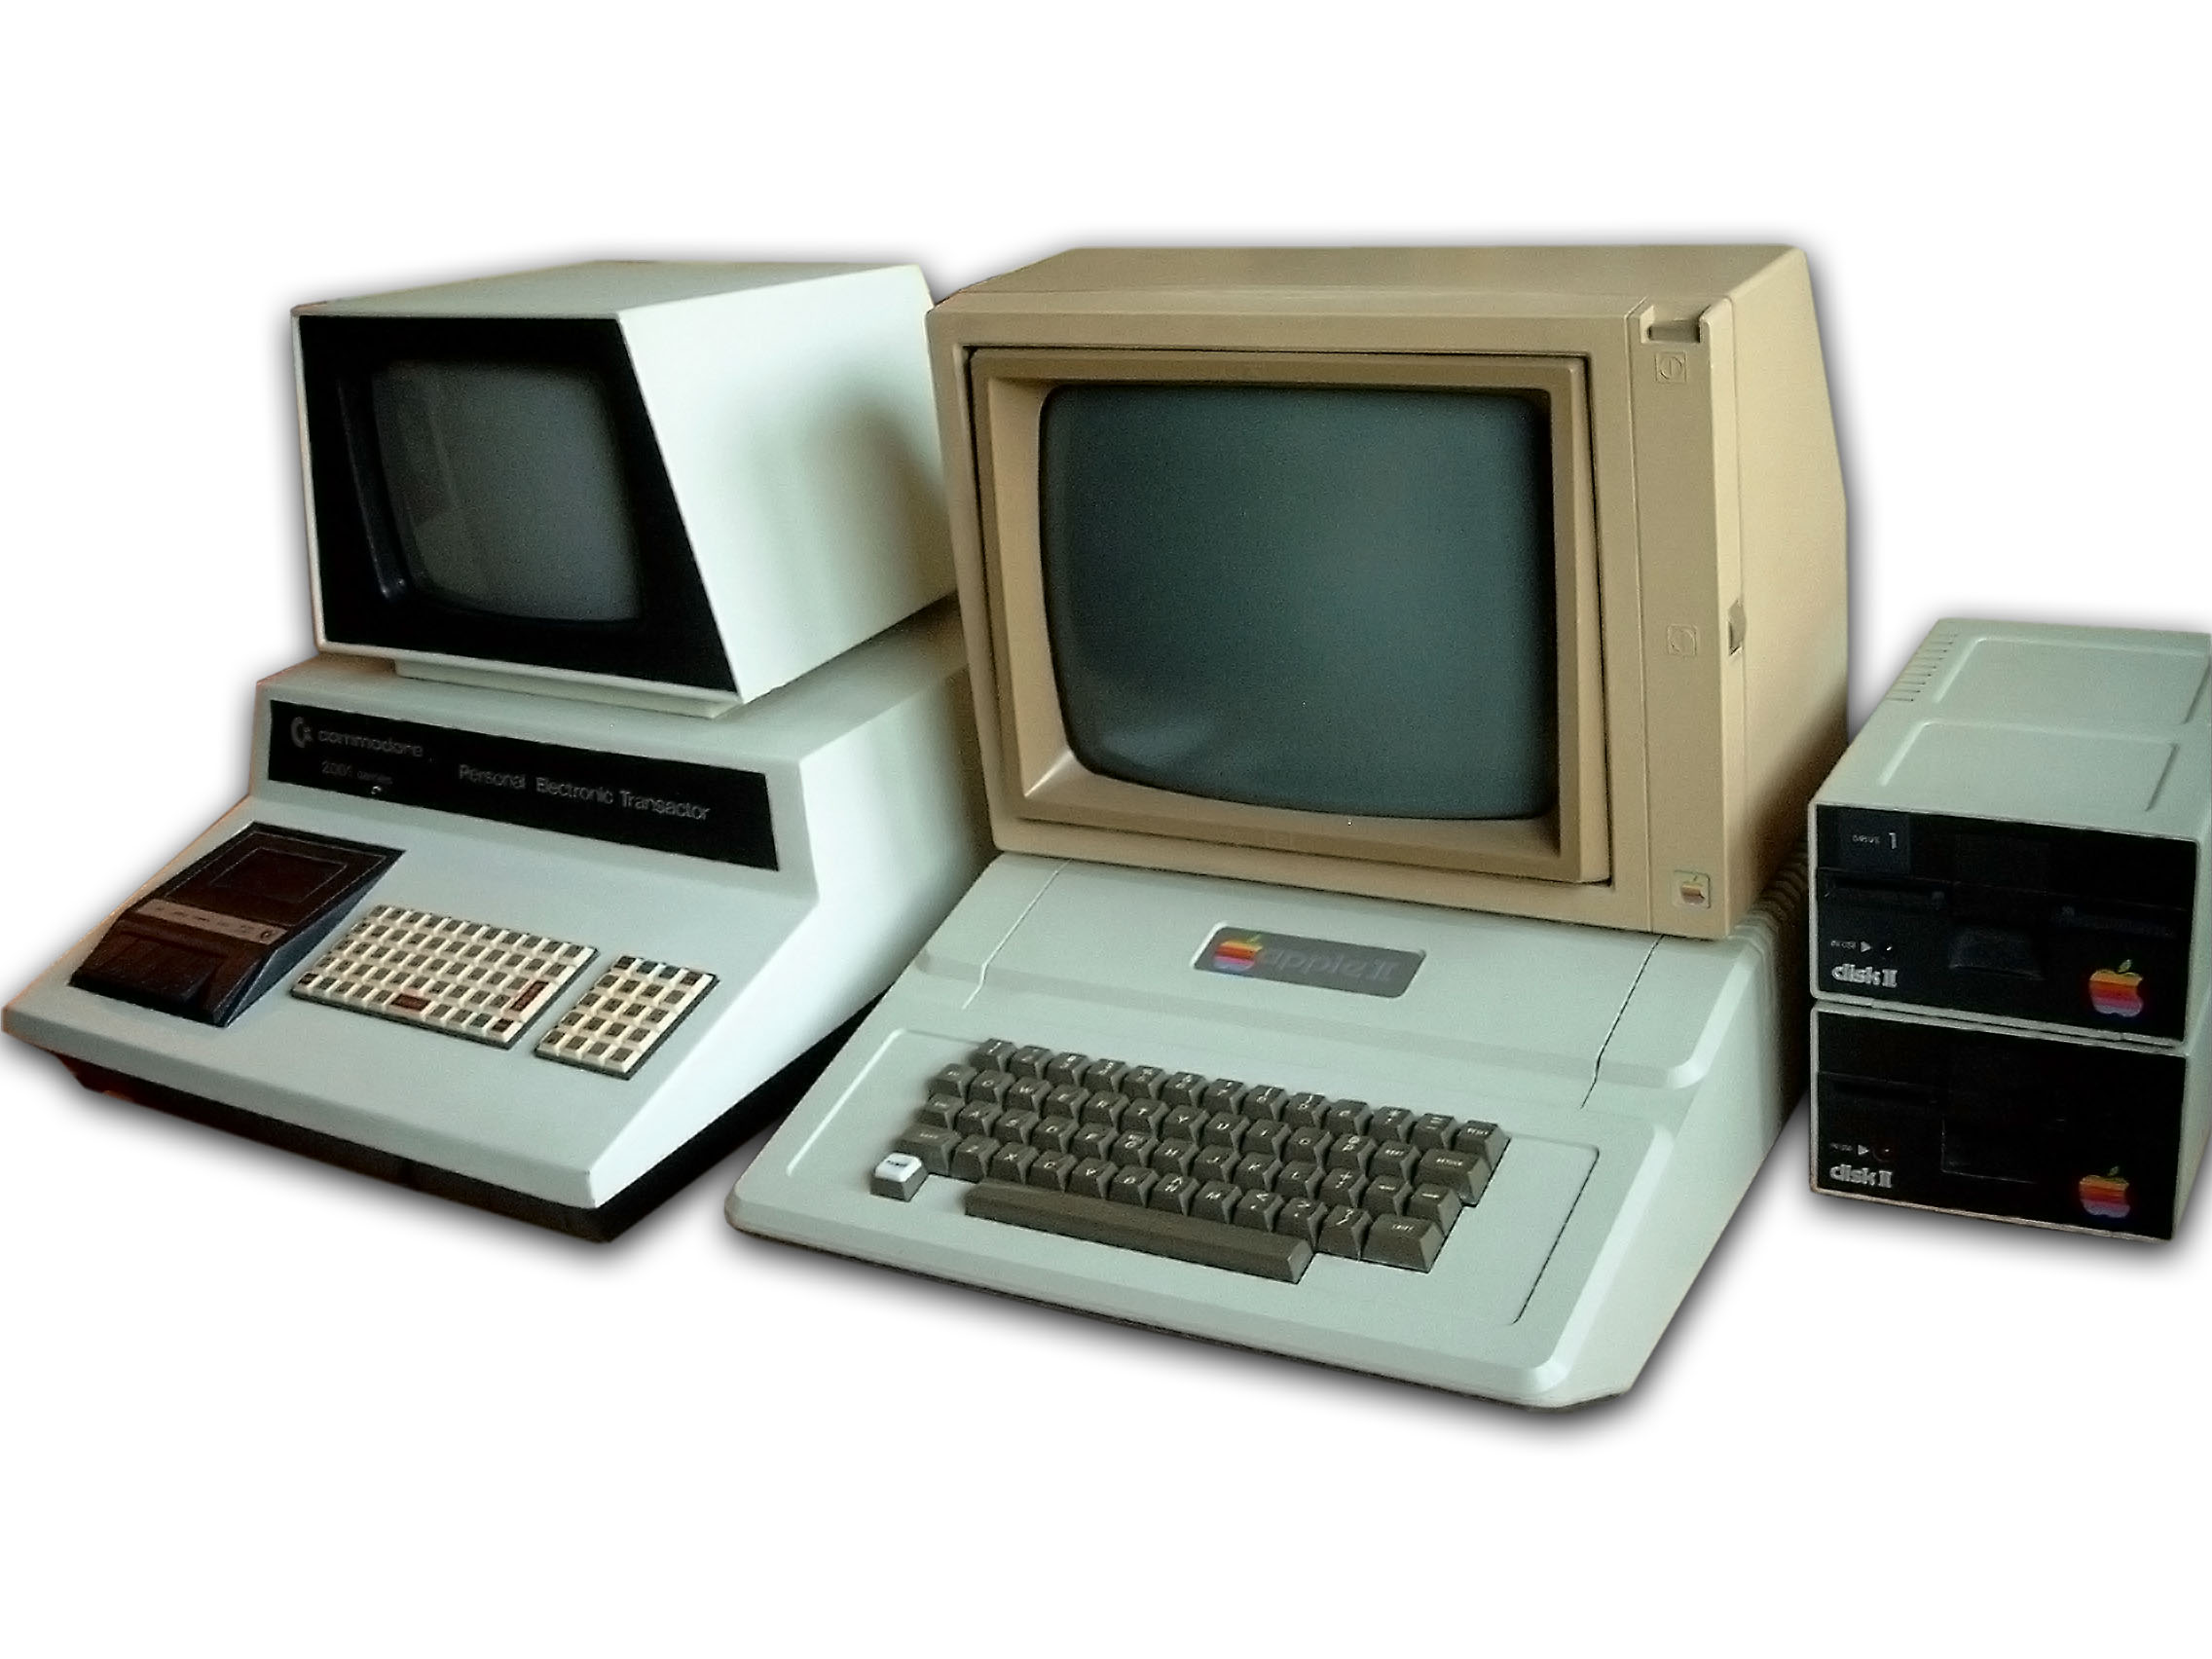 Comparison HP 9845 vs. Apple II and Commodore PET 2001